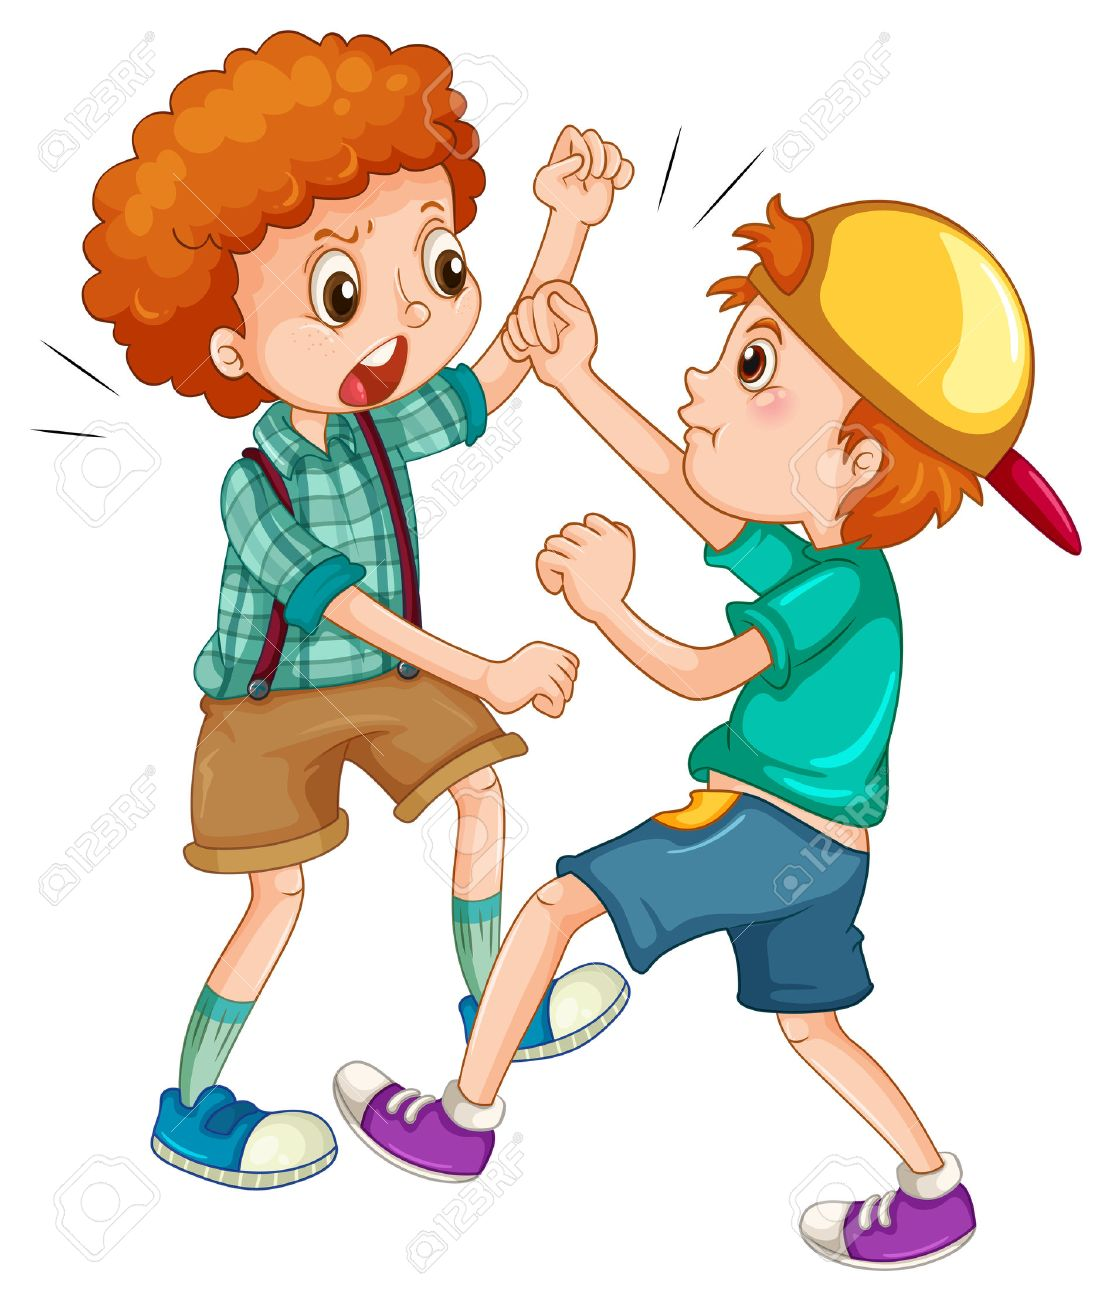 two boys fighting each other illustration royalty free cliparts